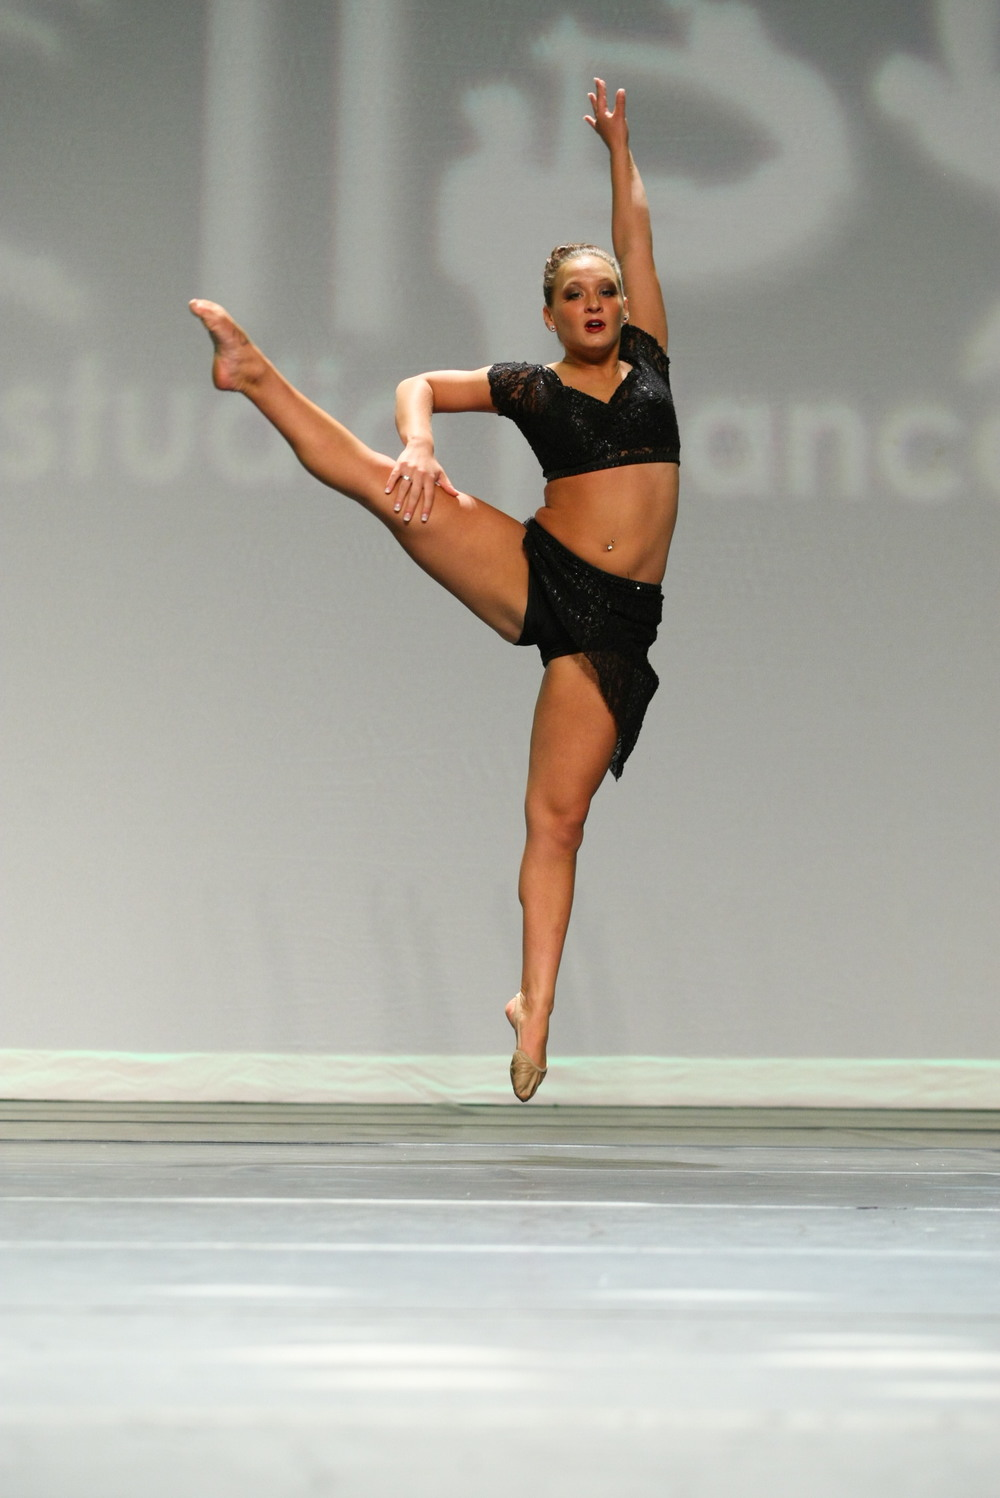 2012 - Michaela Voss from Metro Dance Center